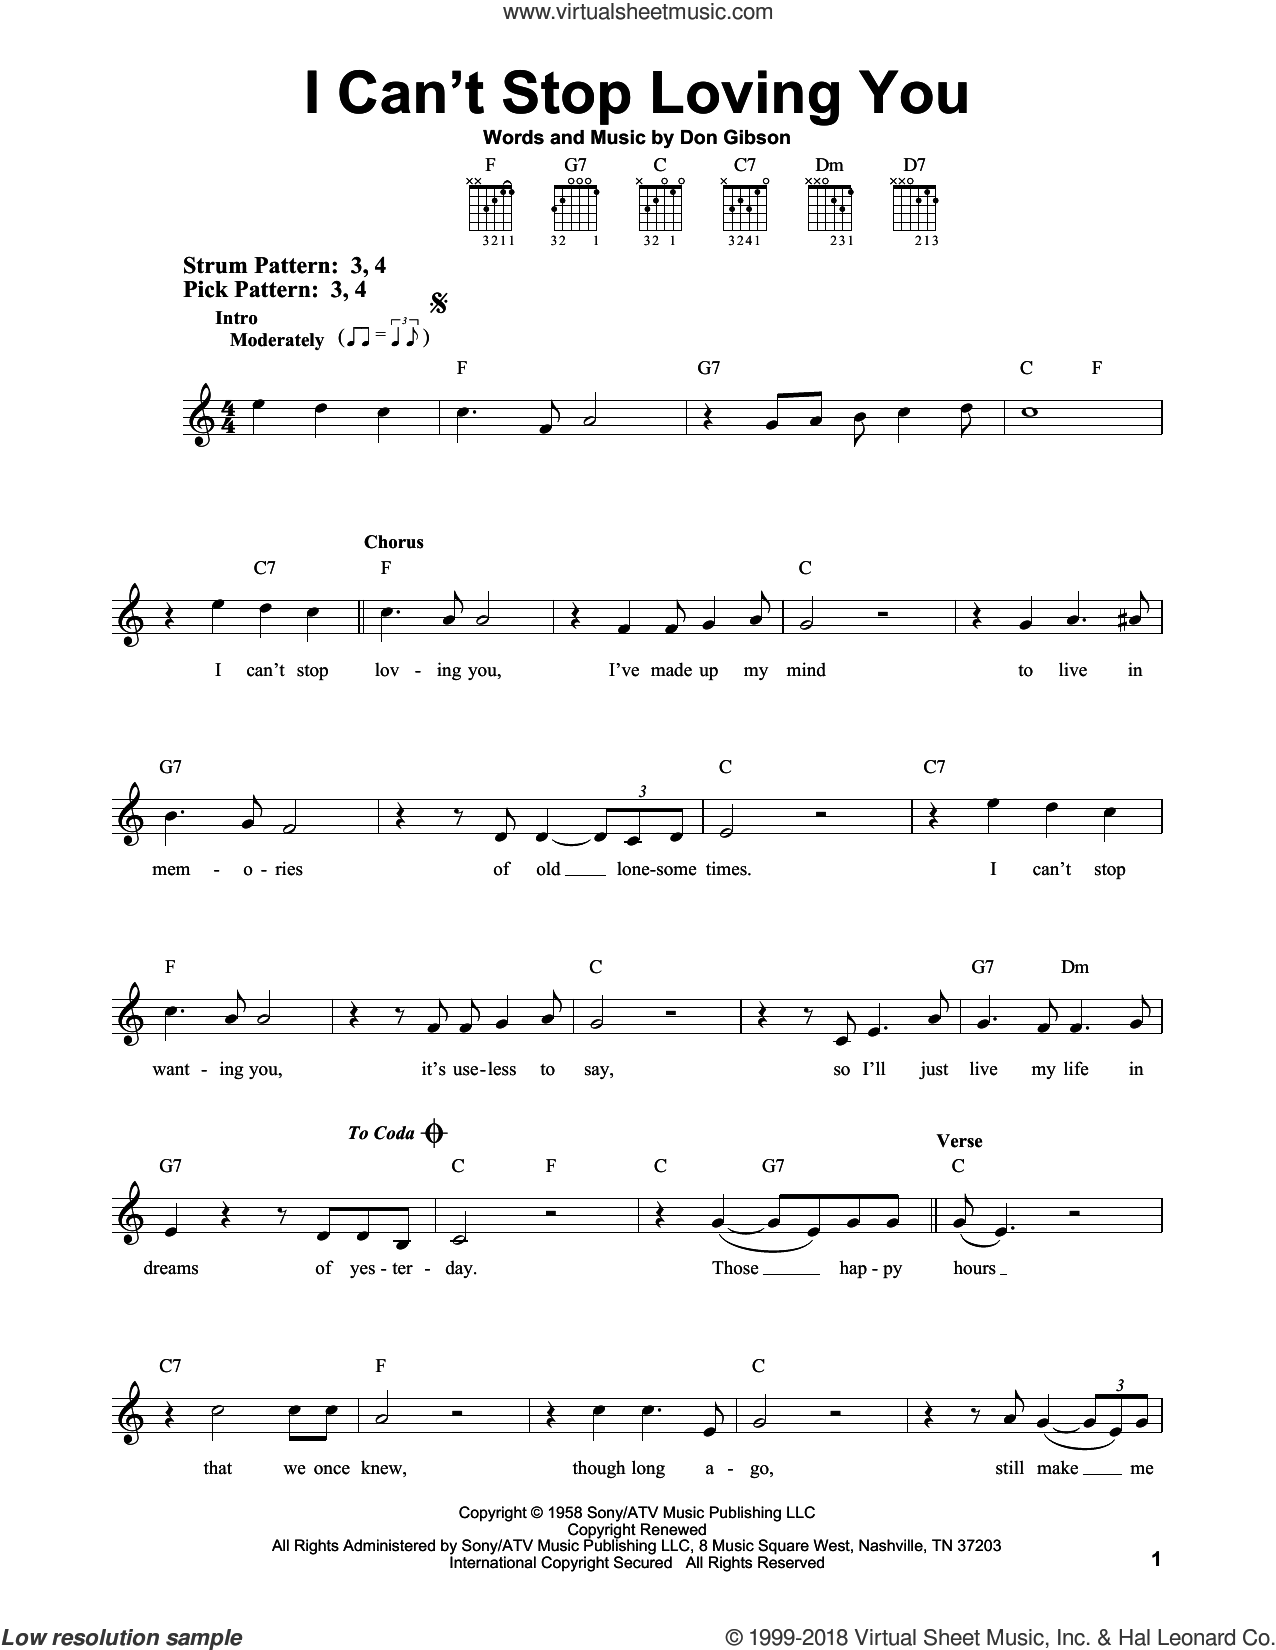 I Can't Stop Loving You sheet music for guitar solo (chords) by Don Gibson, Elvis Presley and Ray Charles. Score Image Preview.